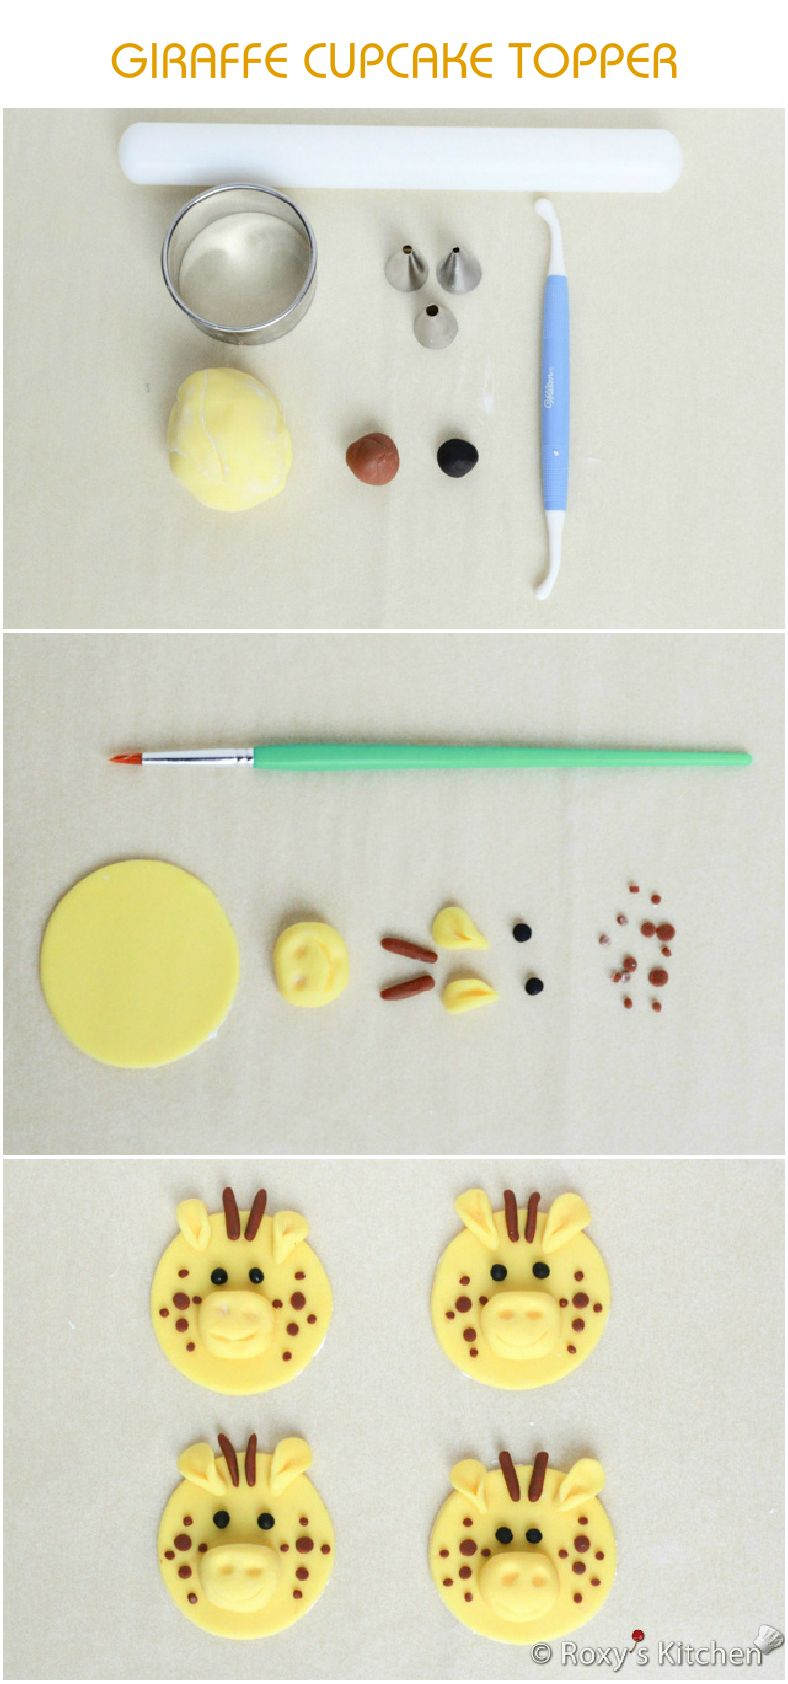 how to make cupcakes instructions